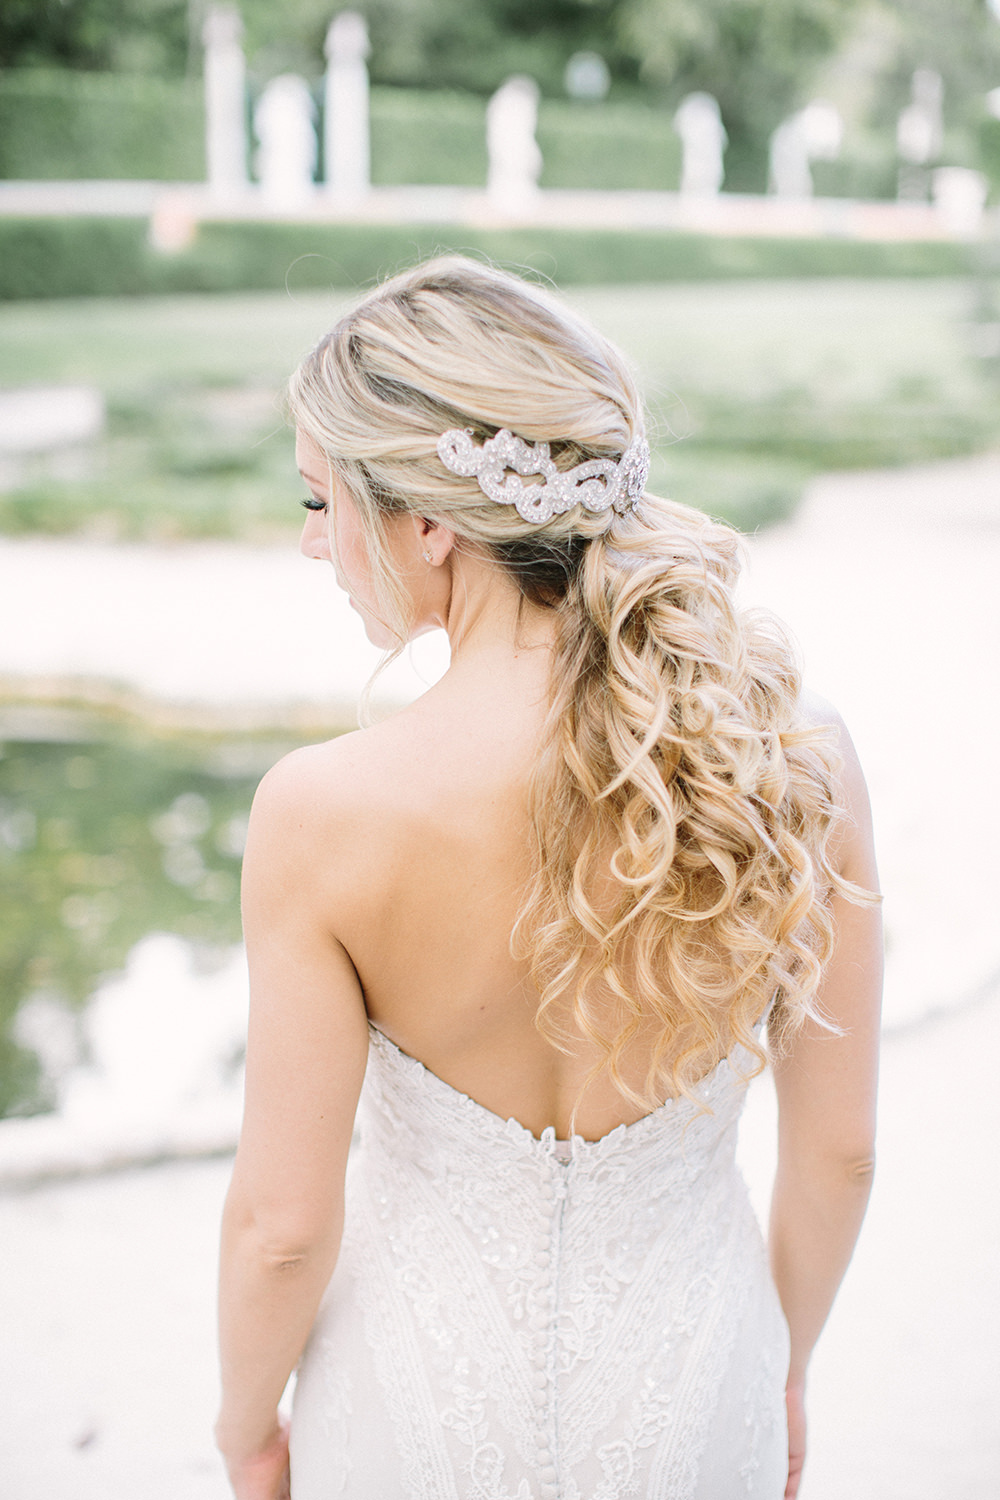 romantic bridal hair - photo by Erica J Photography https://ruffledblog.com/old-world-wedding-editorial-at-vizcaya-museum